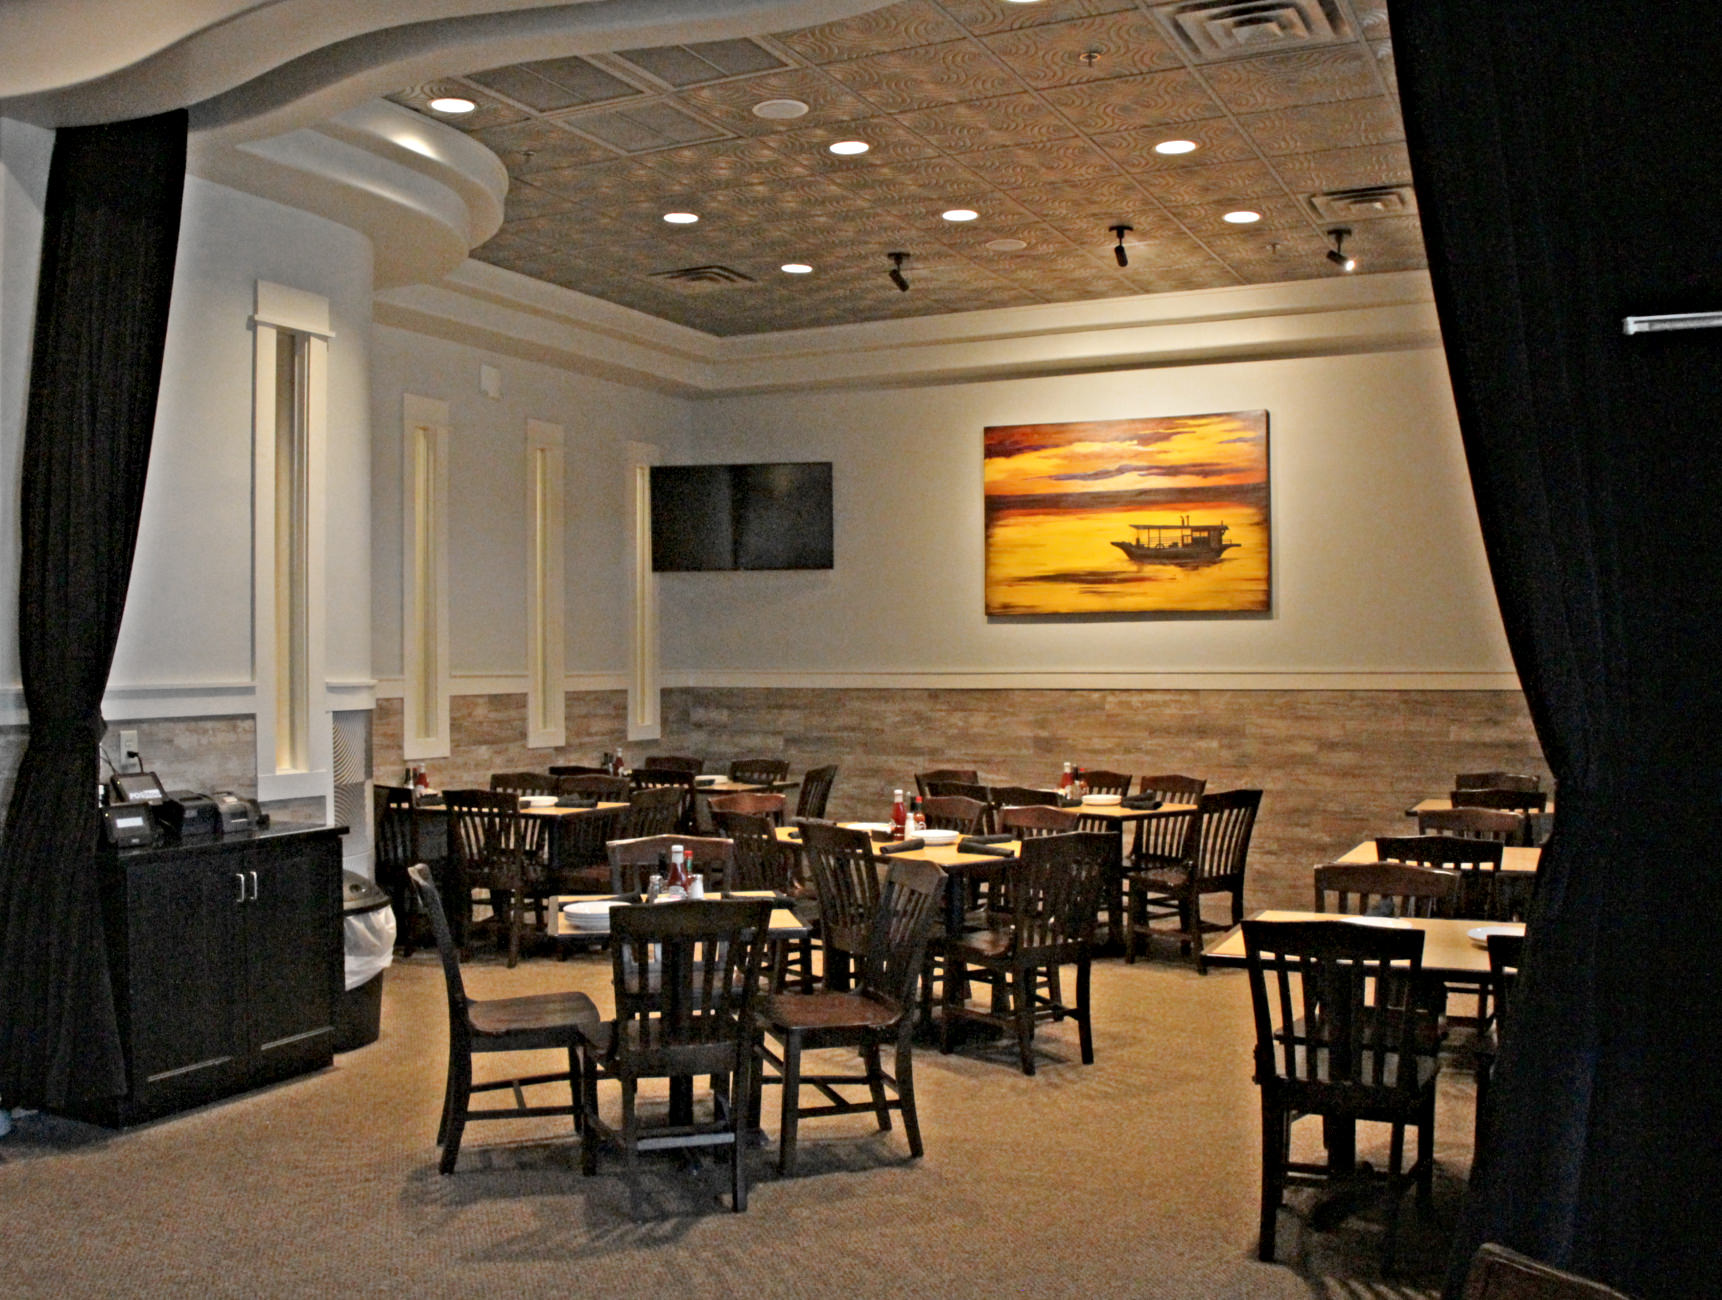 Private dining room at Drago's Seafood Restaurant in Lafayette